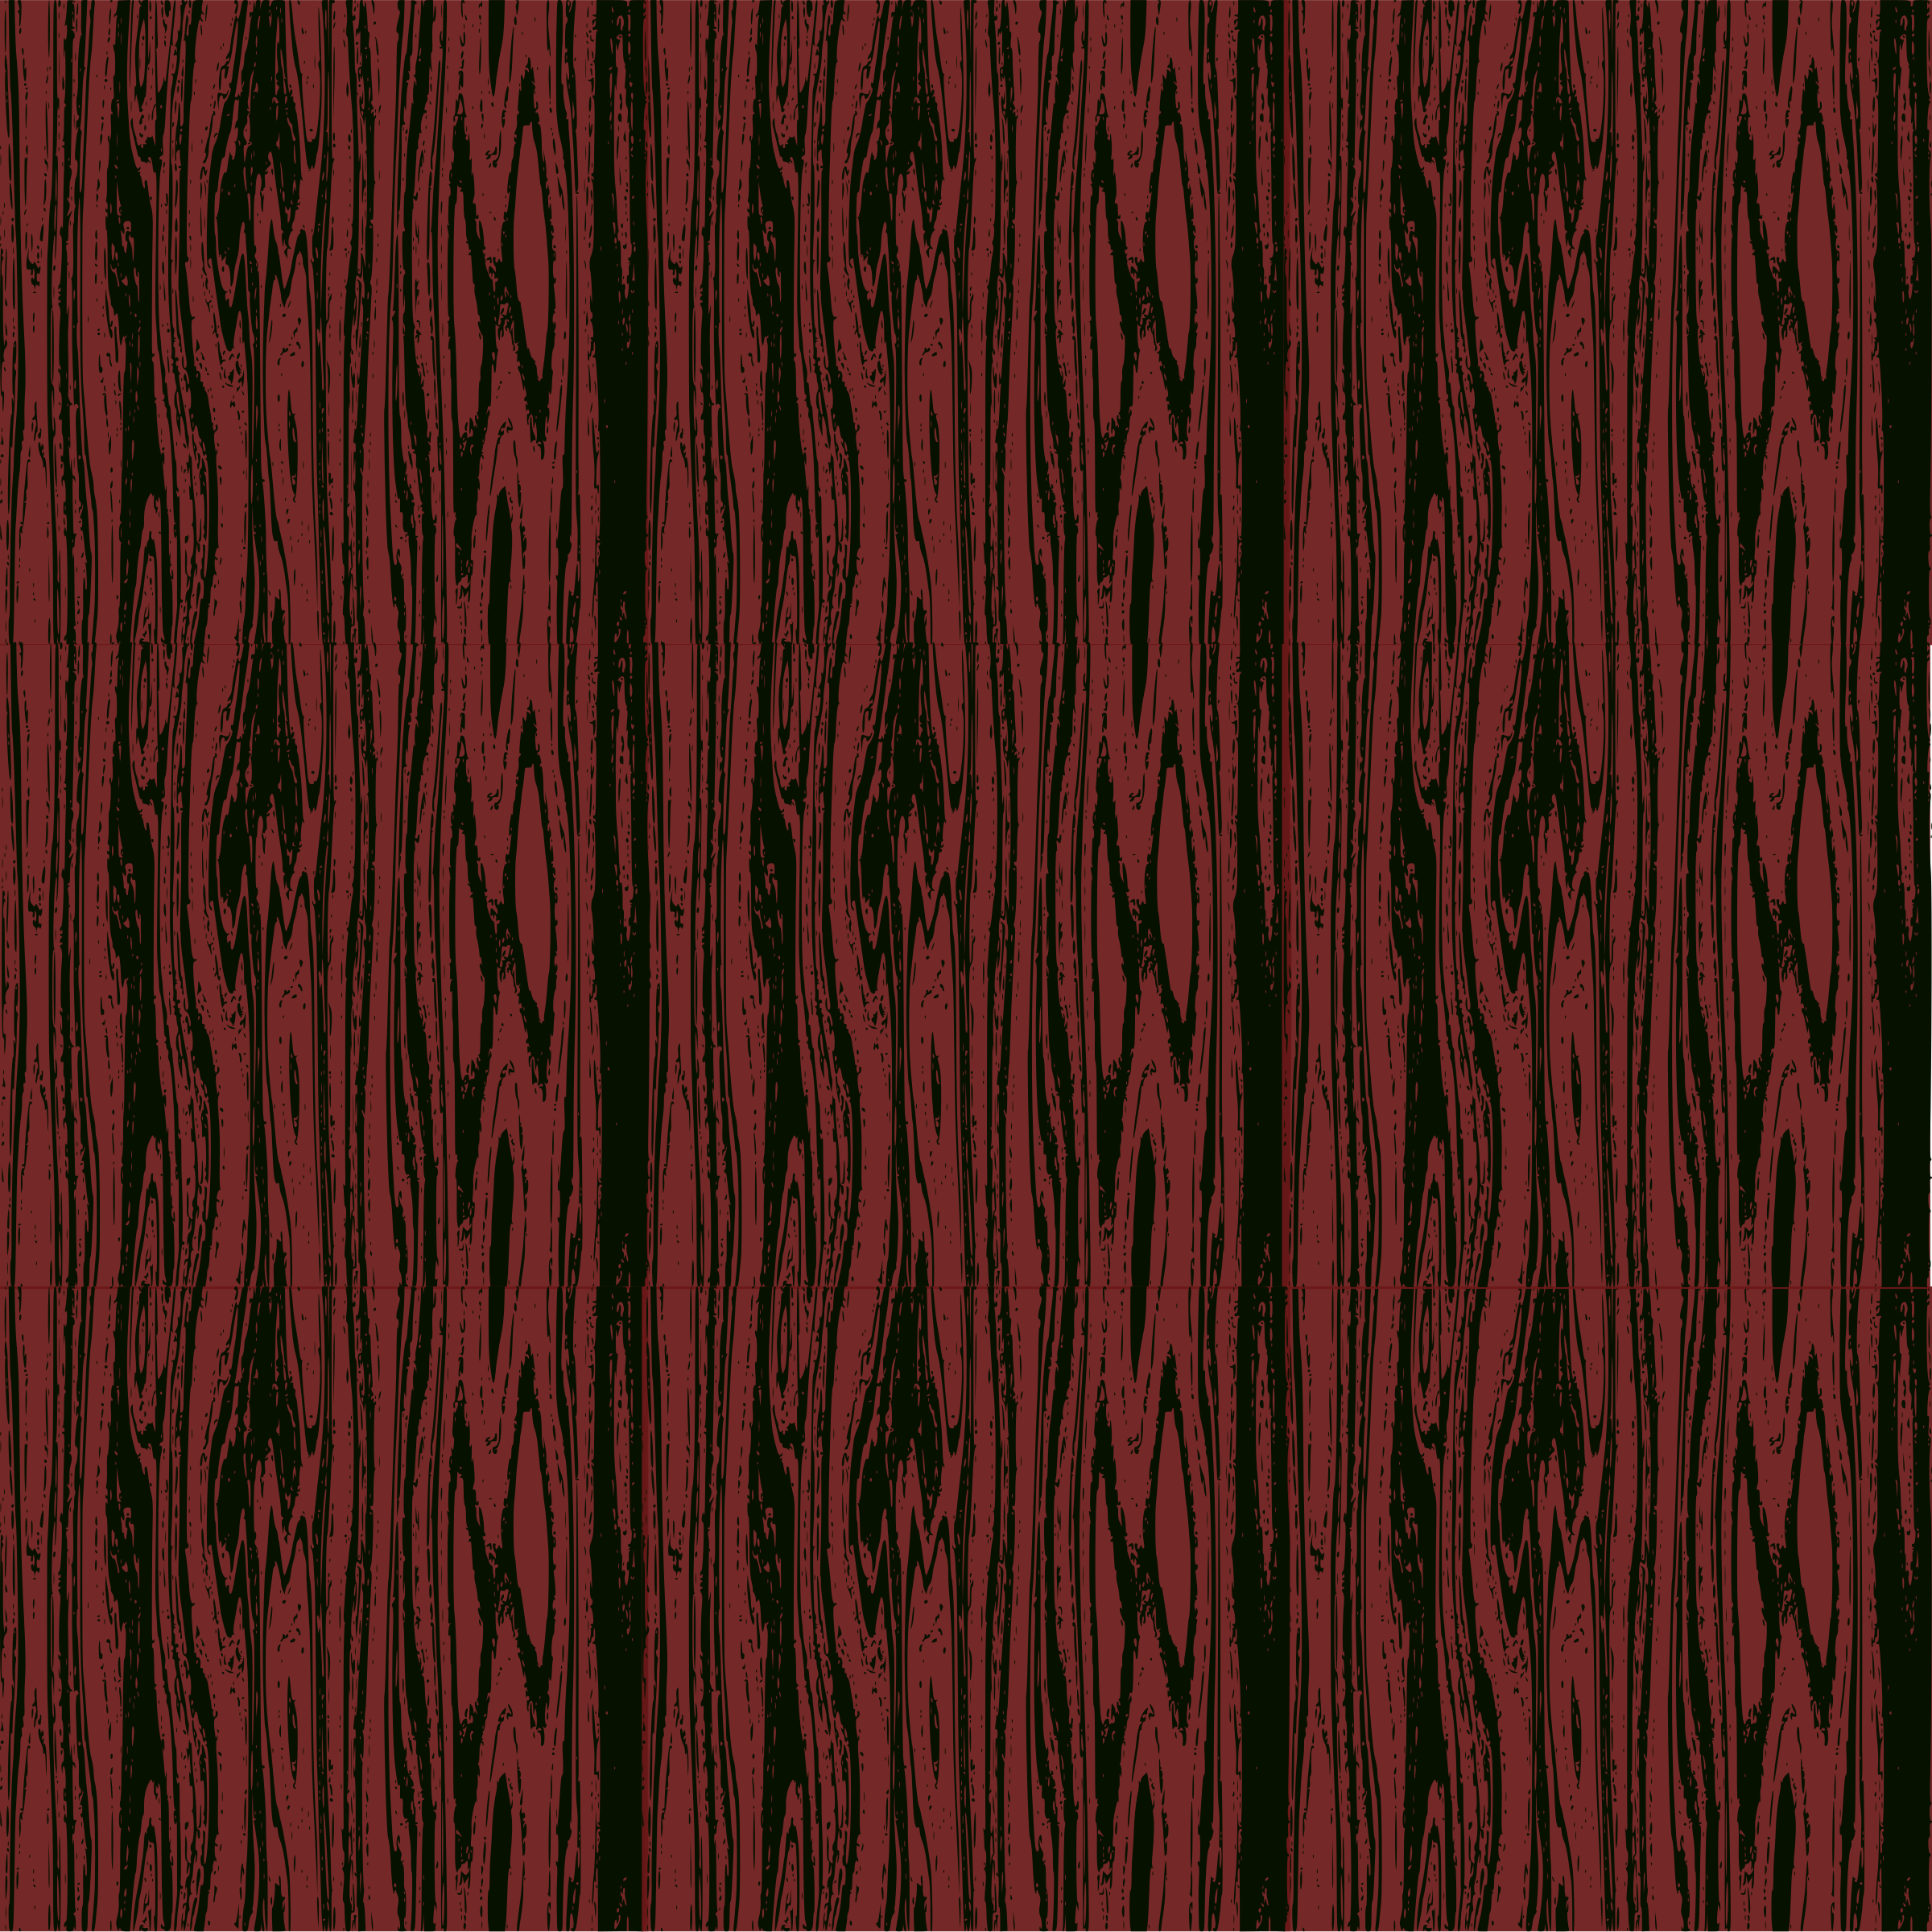 Grain woody texture seamless pattern by yamachem